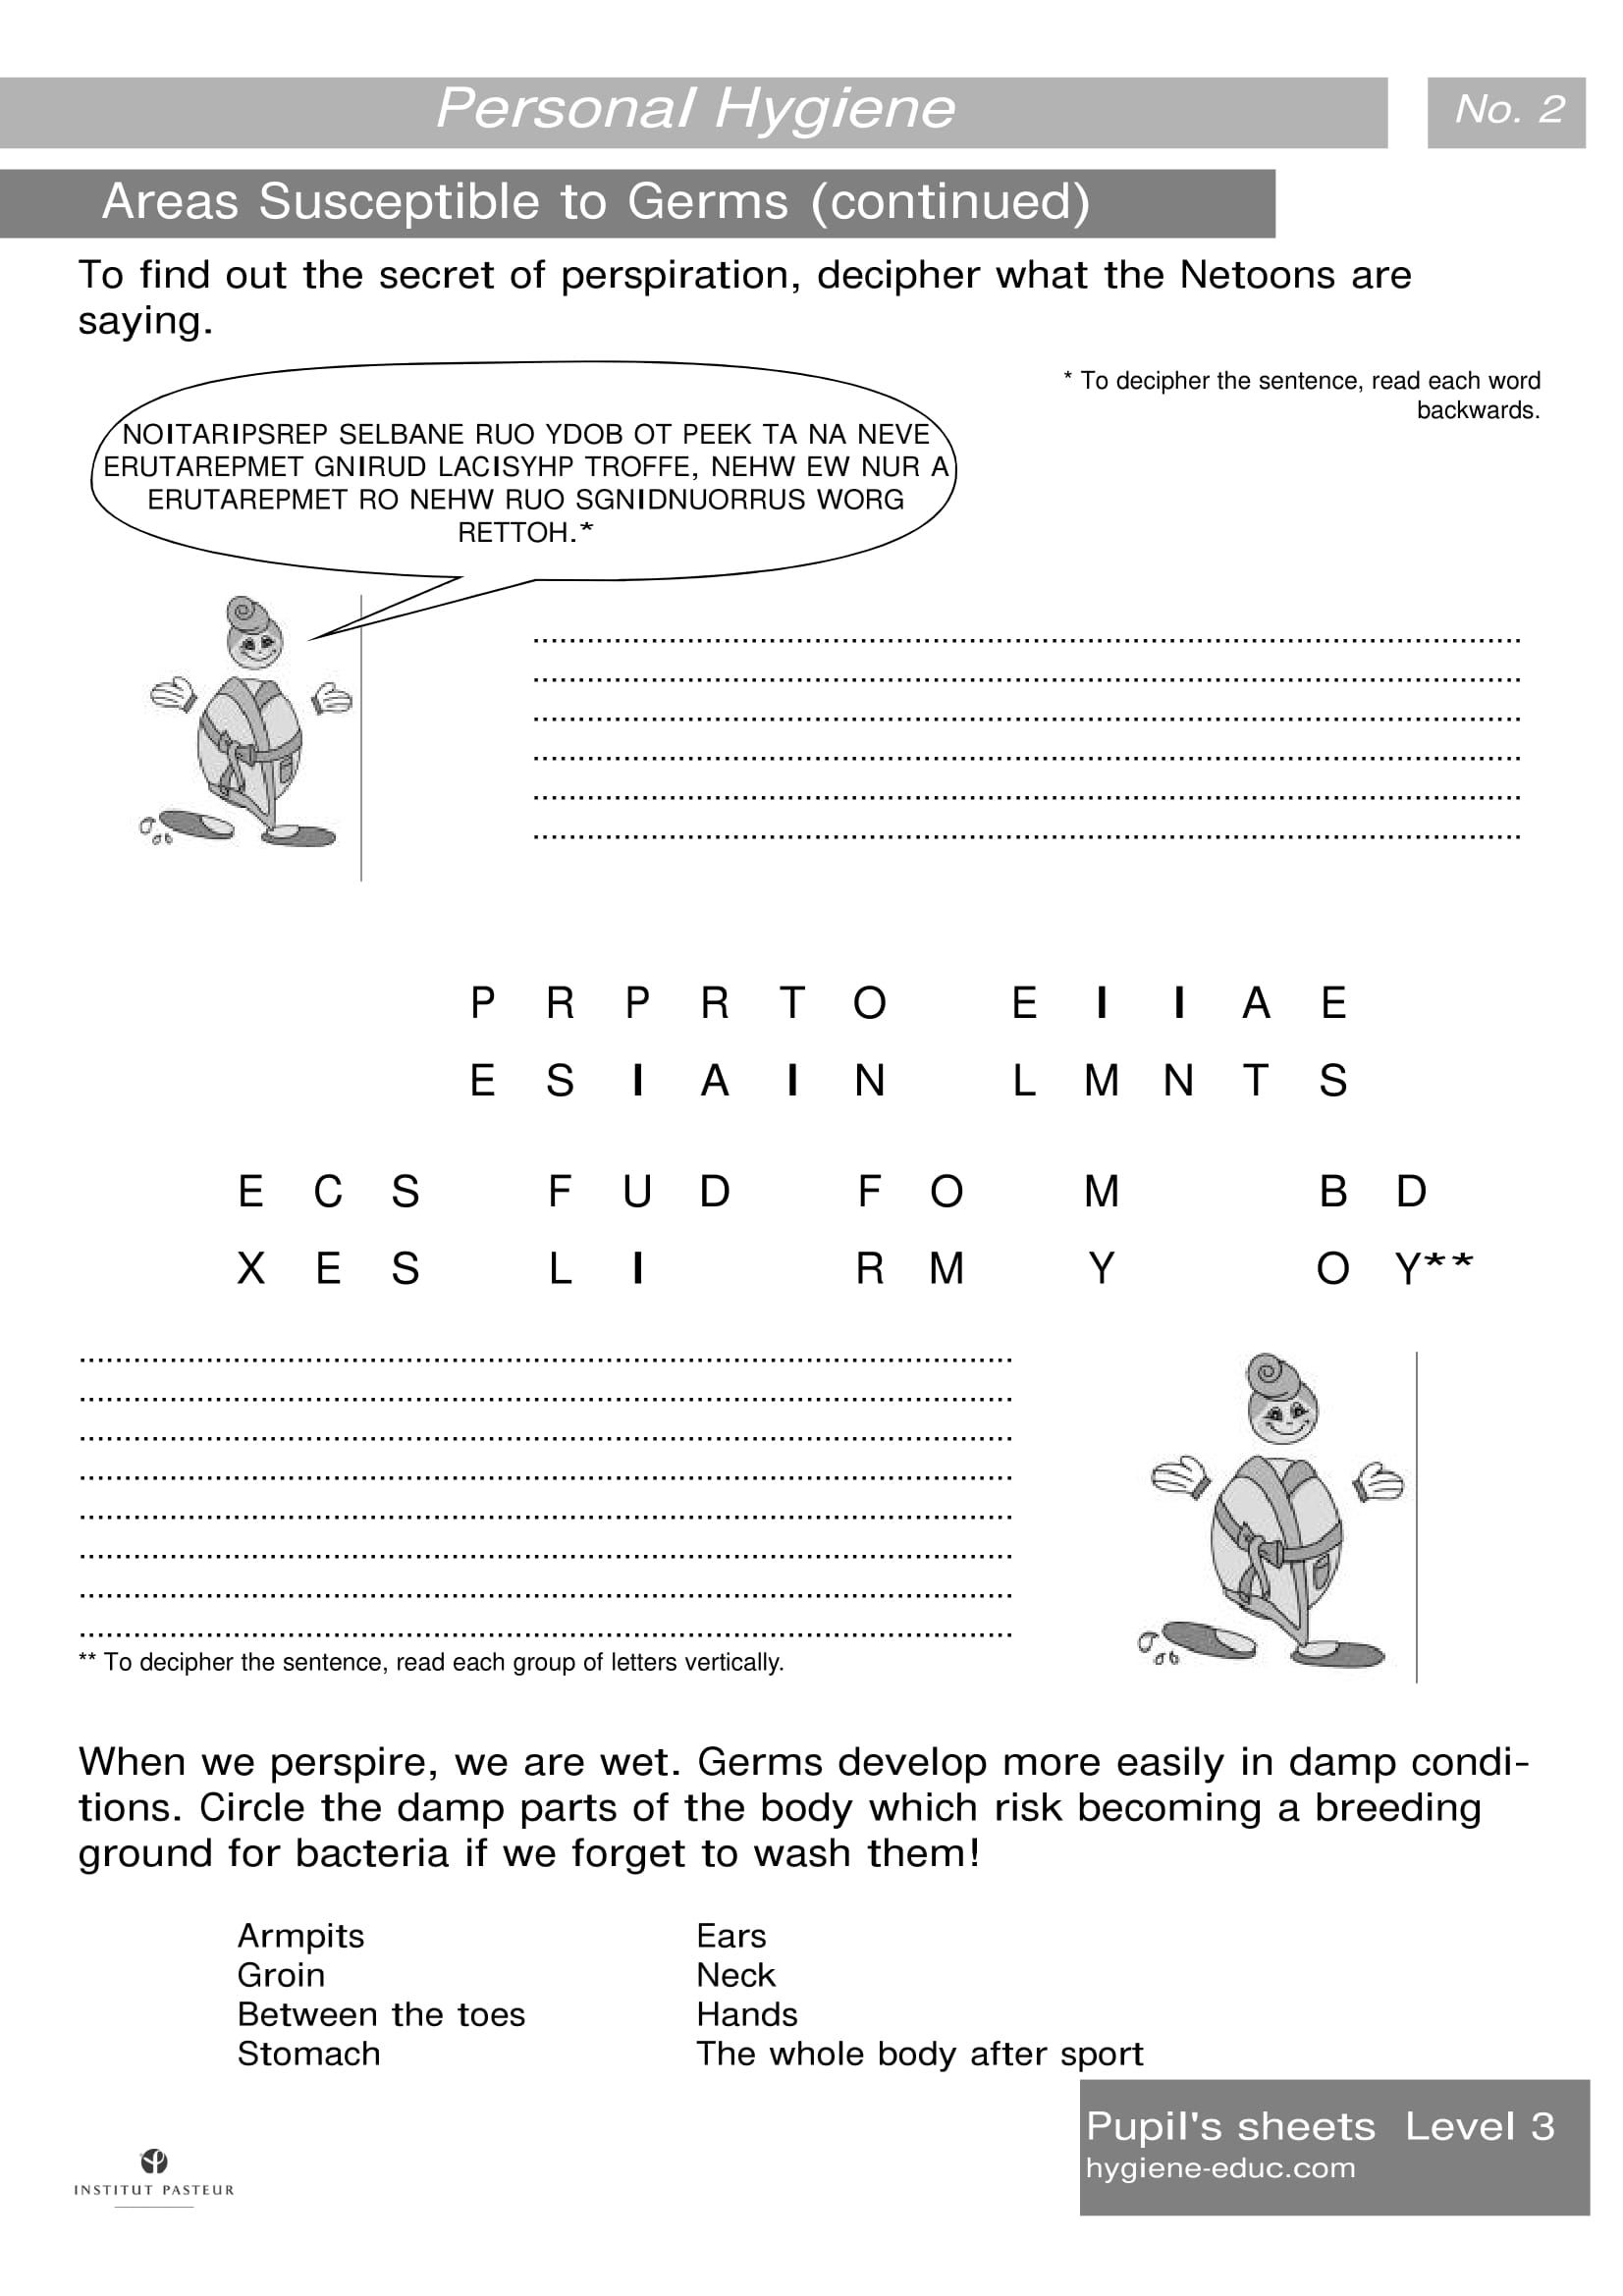 Personal Hygiene Worksheets Level 3 Areas Susceptible To Germs